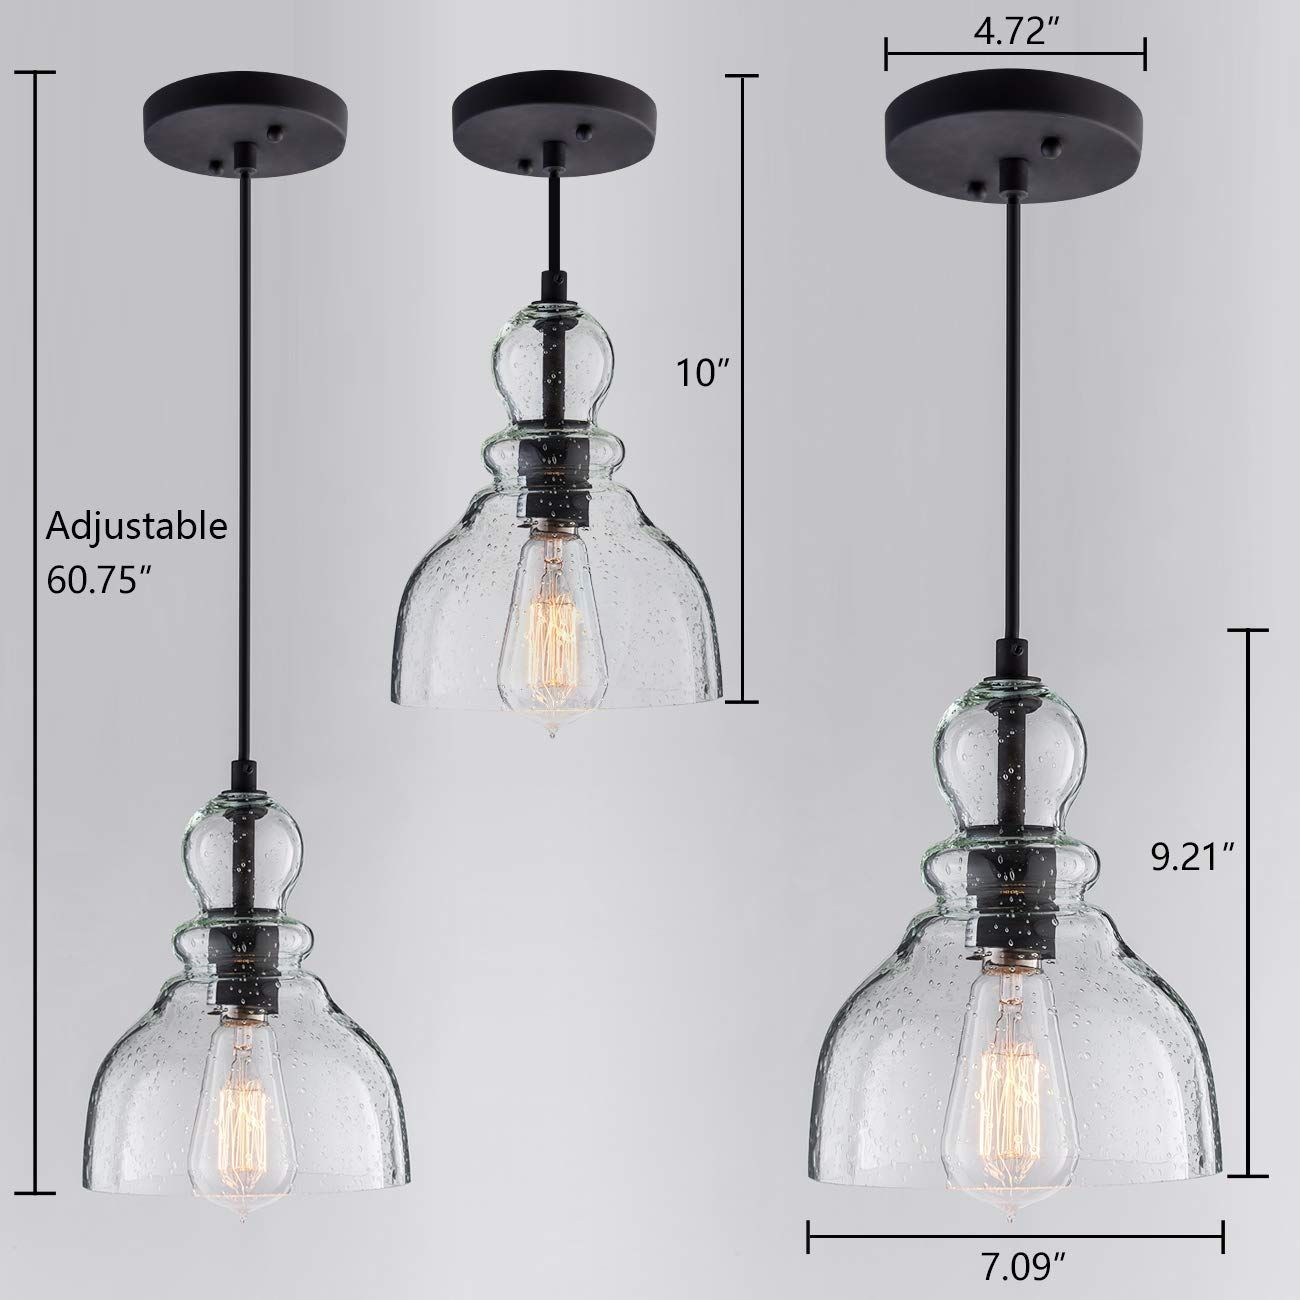 Lanros Industrial Mini Pendant Lighting With Handblown Clear Seeded Glass Shade Adjustable Edison Pendant Light Ceiling Pendant Lights Pendant Light Fixtures